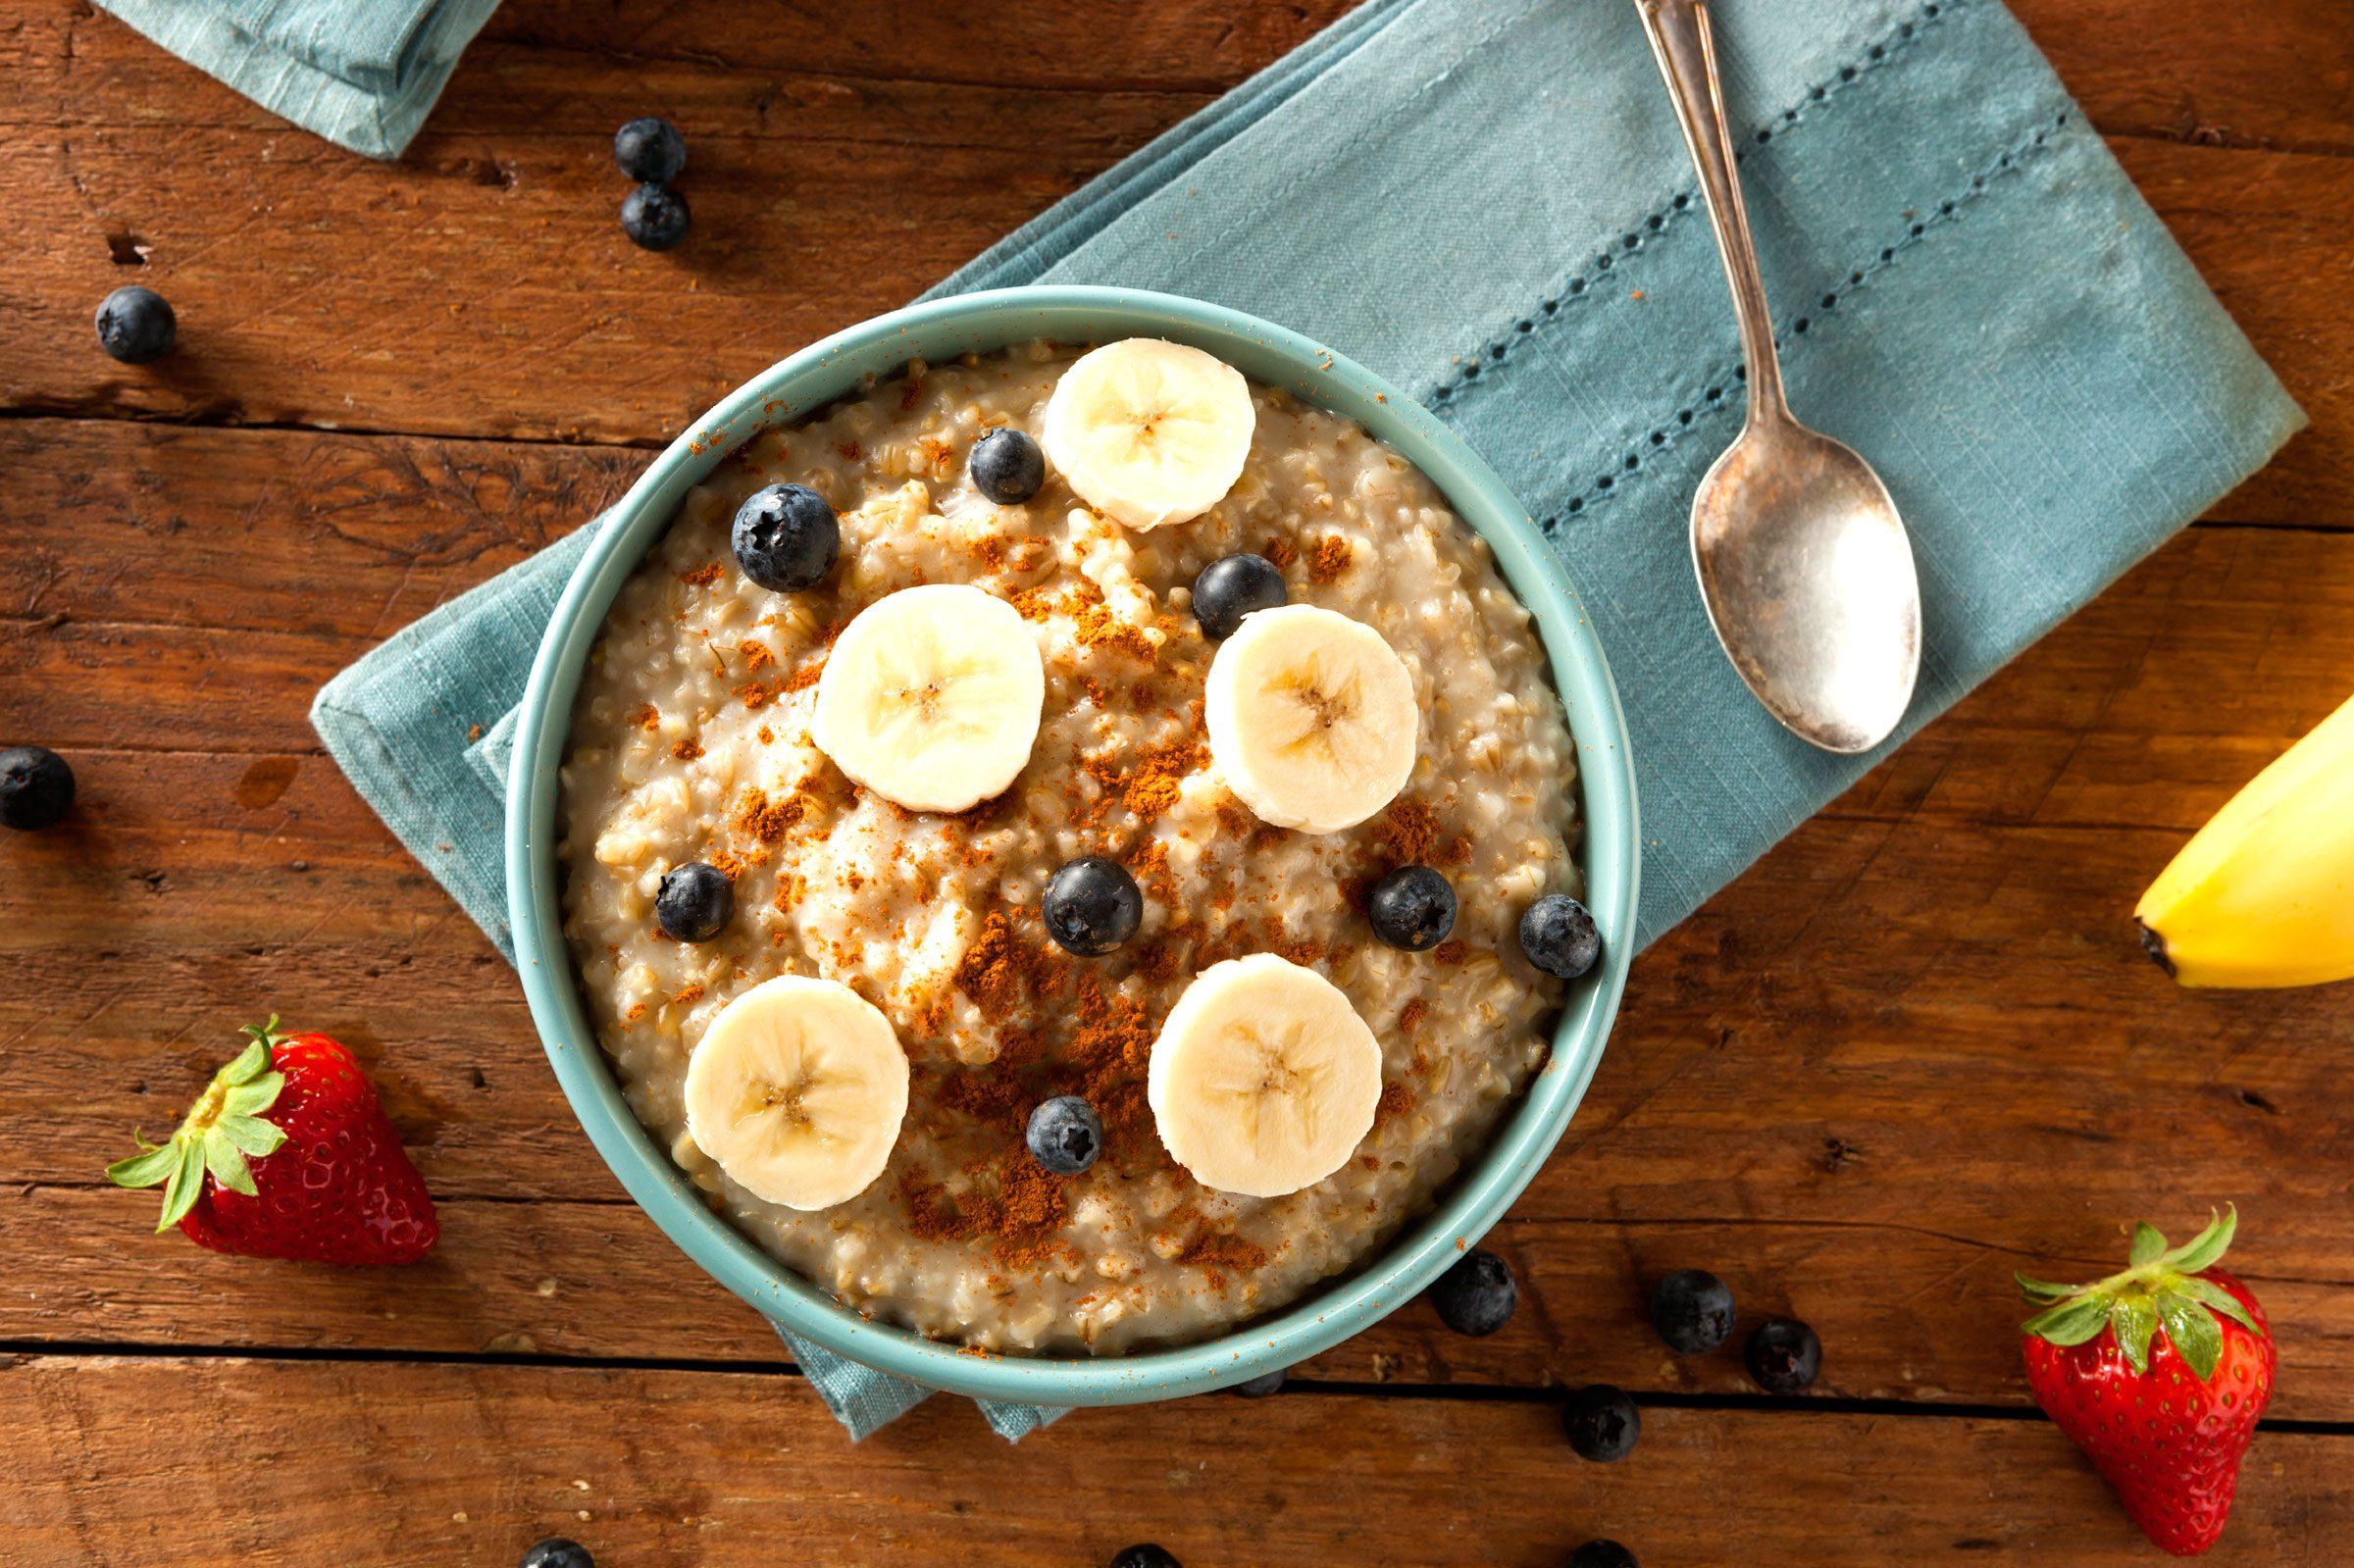 10 foods that all diabetics should avoid - You Eat Whole Grains Throughout The Day